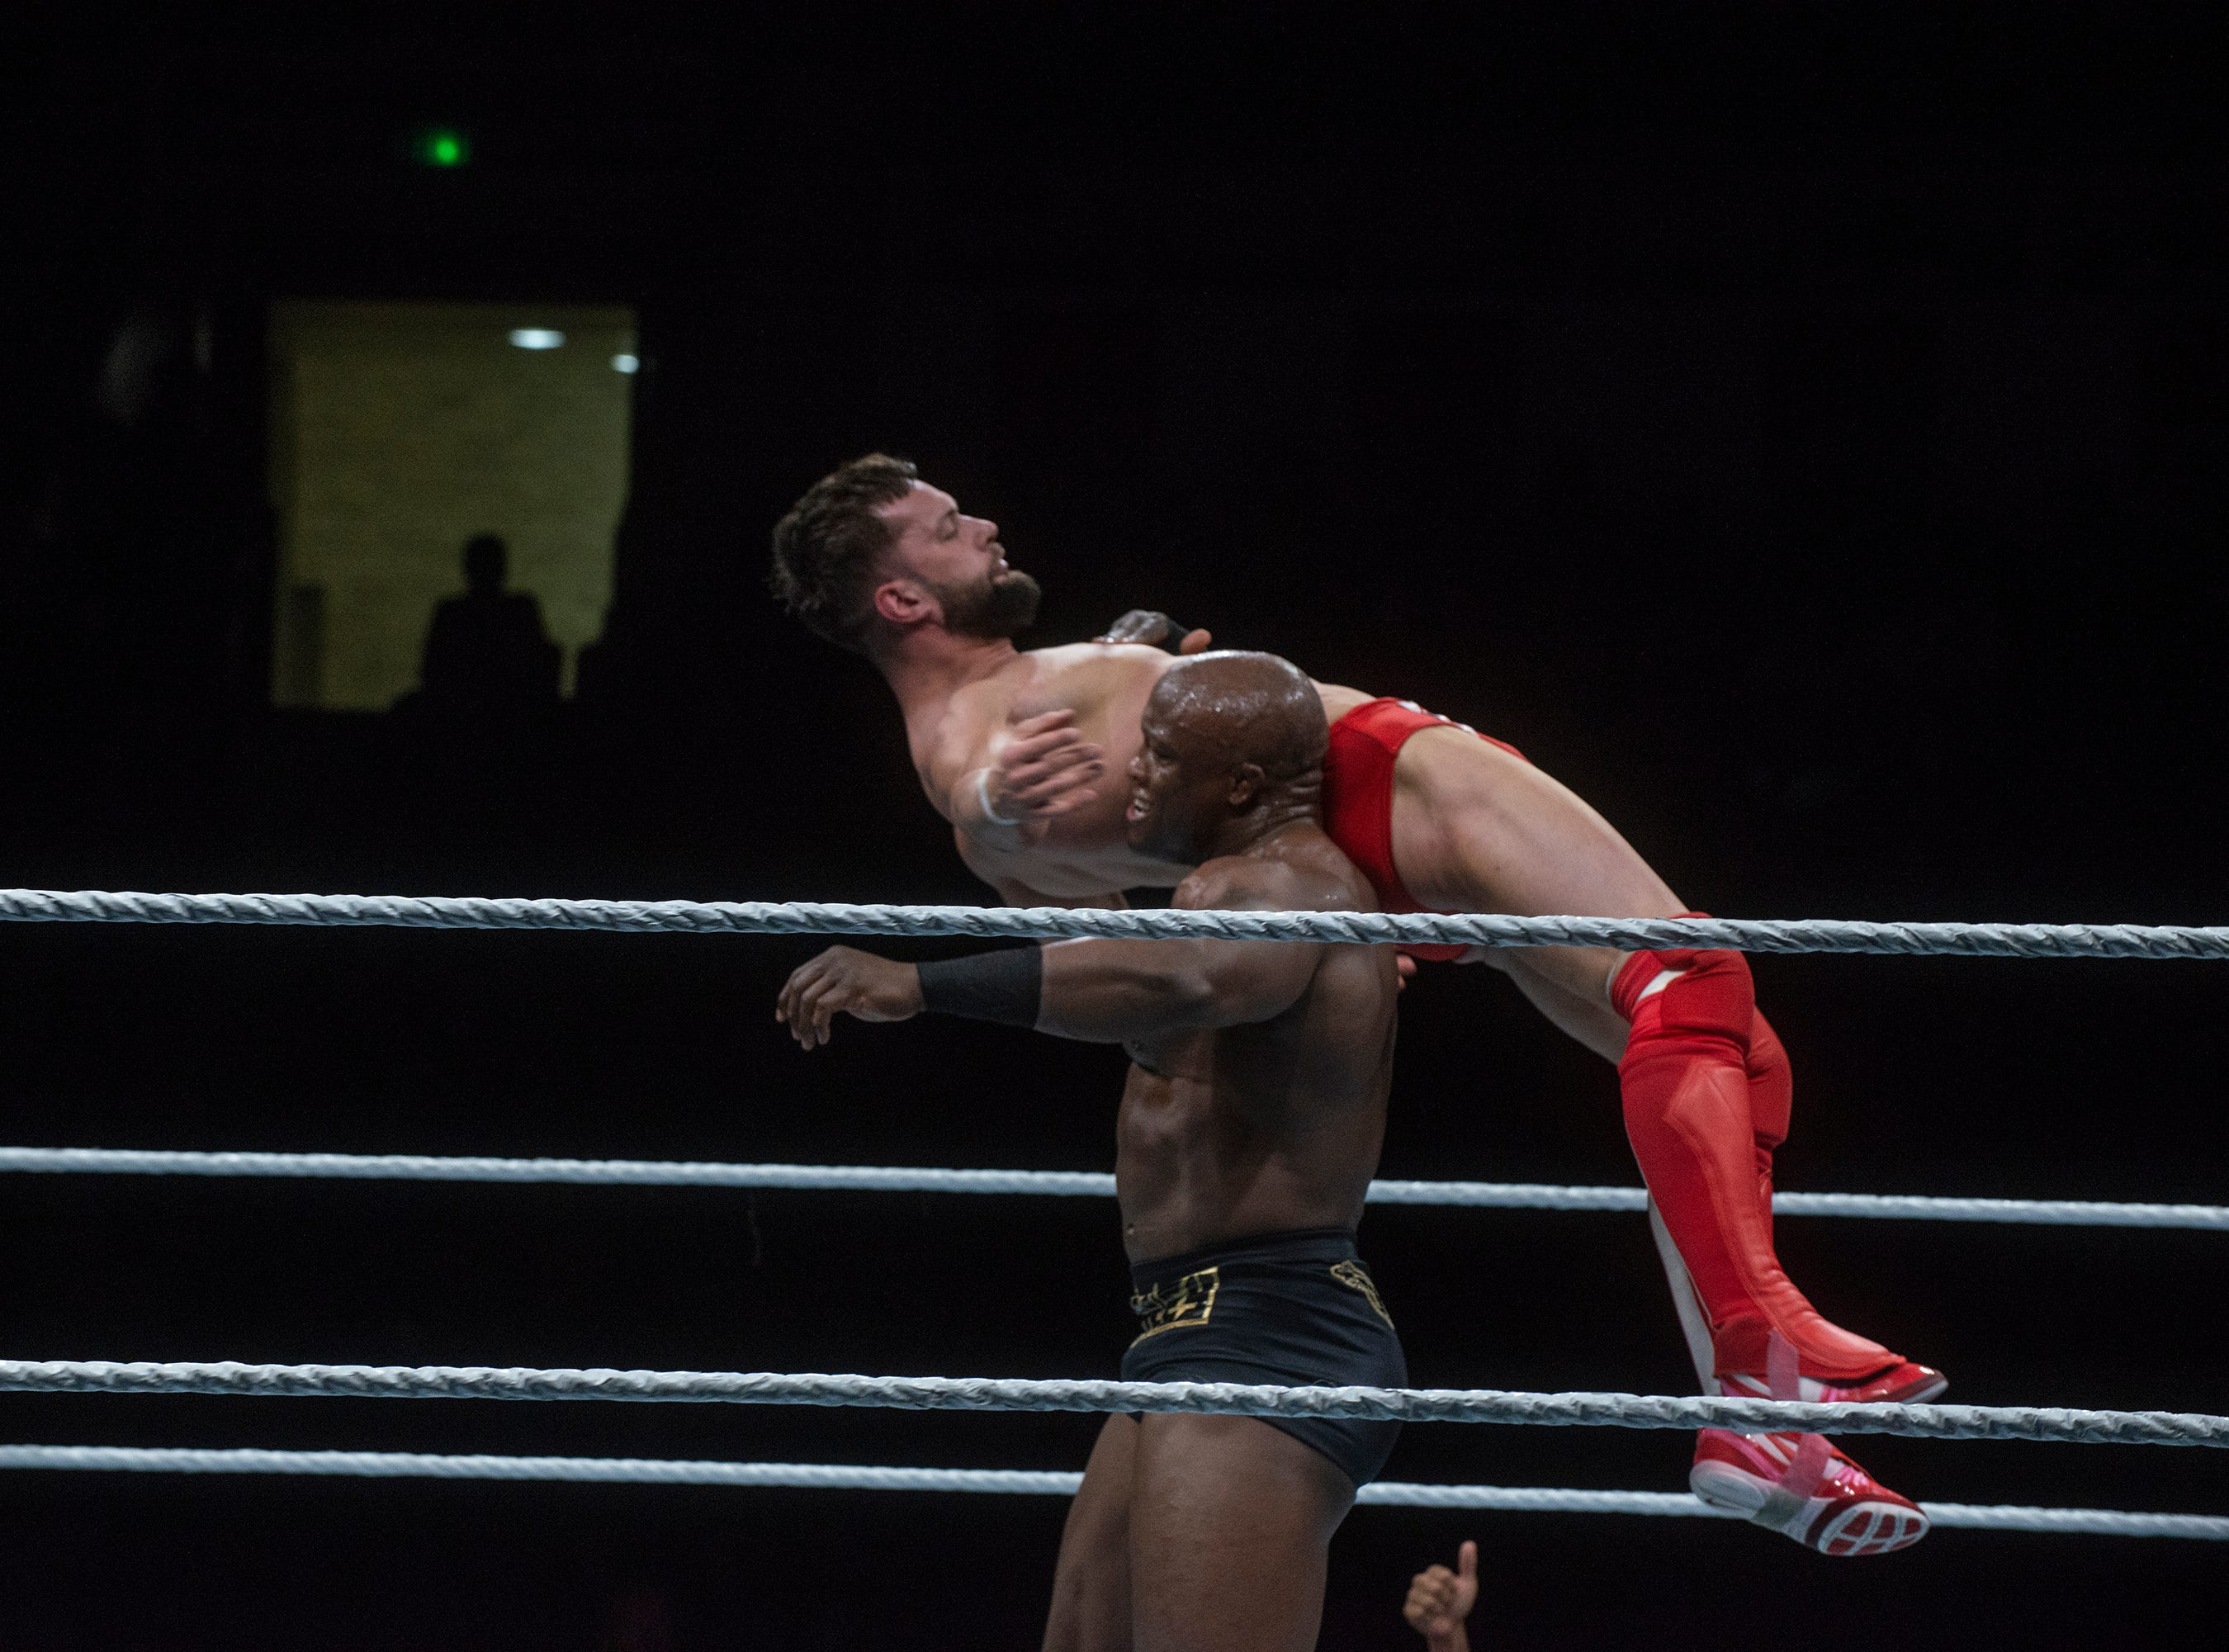 Intercontinental Heavyweight Wrestling Champion Finn Balor is carried around by Bobby Lashley. WWE Live Road to Wrestlemania came to Garrett Coliseum in Montgomery on Sunday, Feb. 24, 2019.